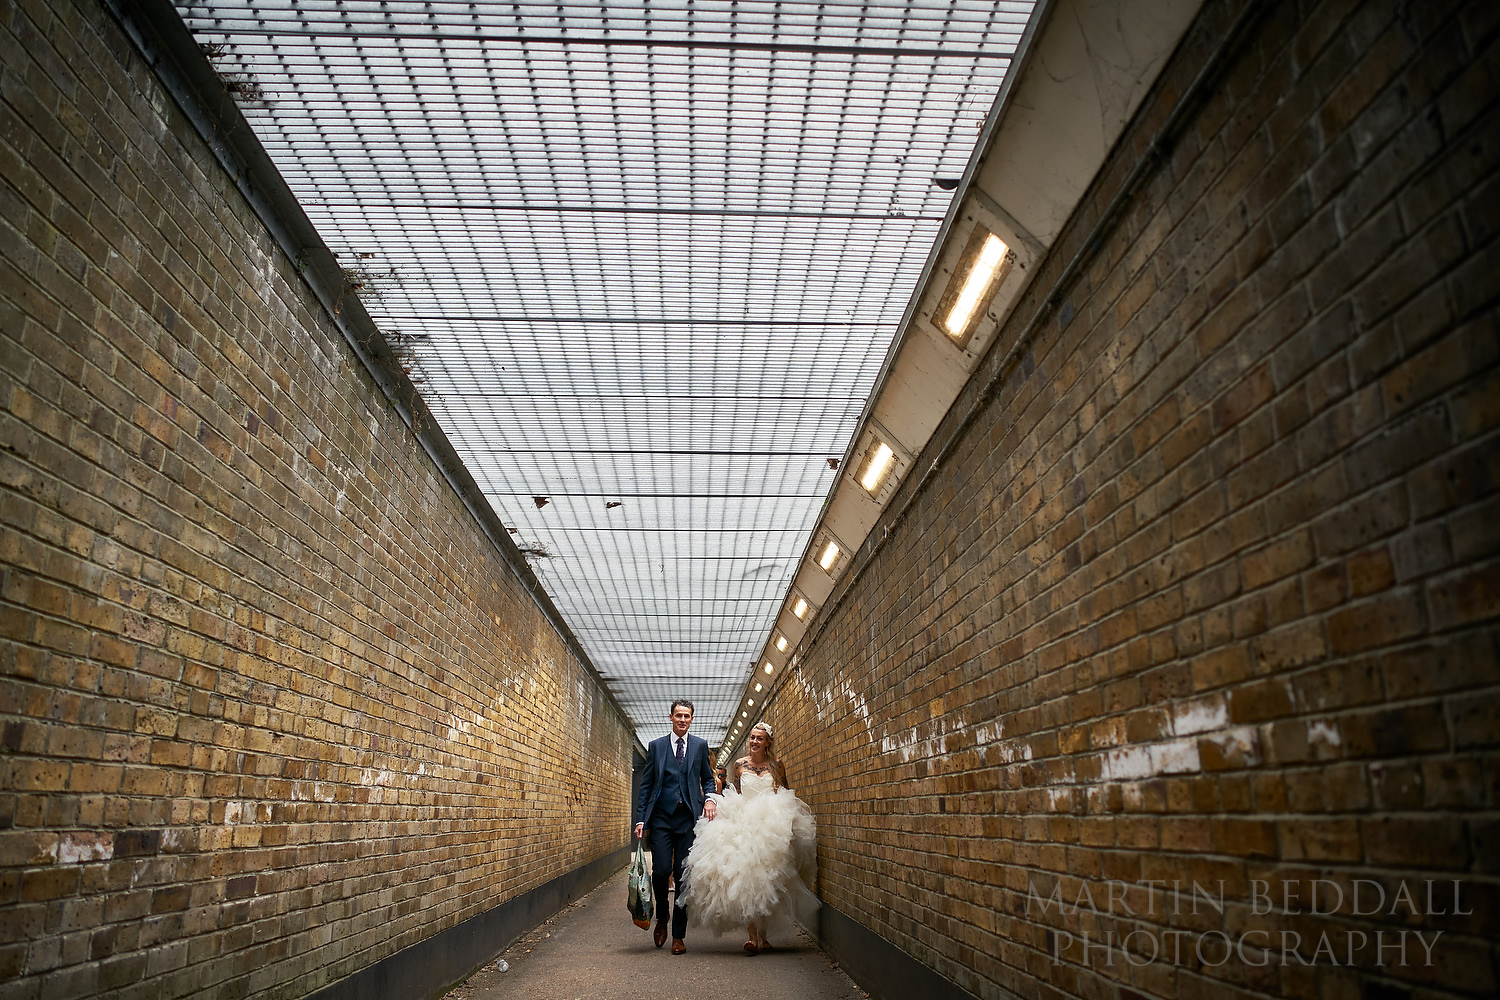 Bride and her father walking along the underpass in Chiswick